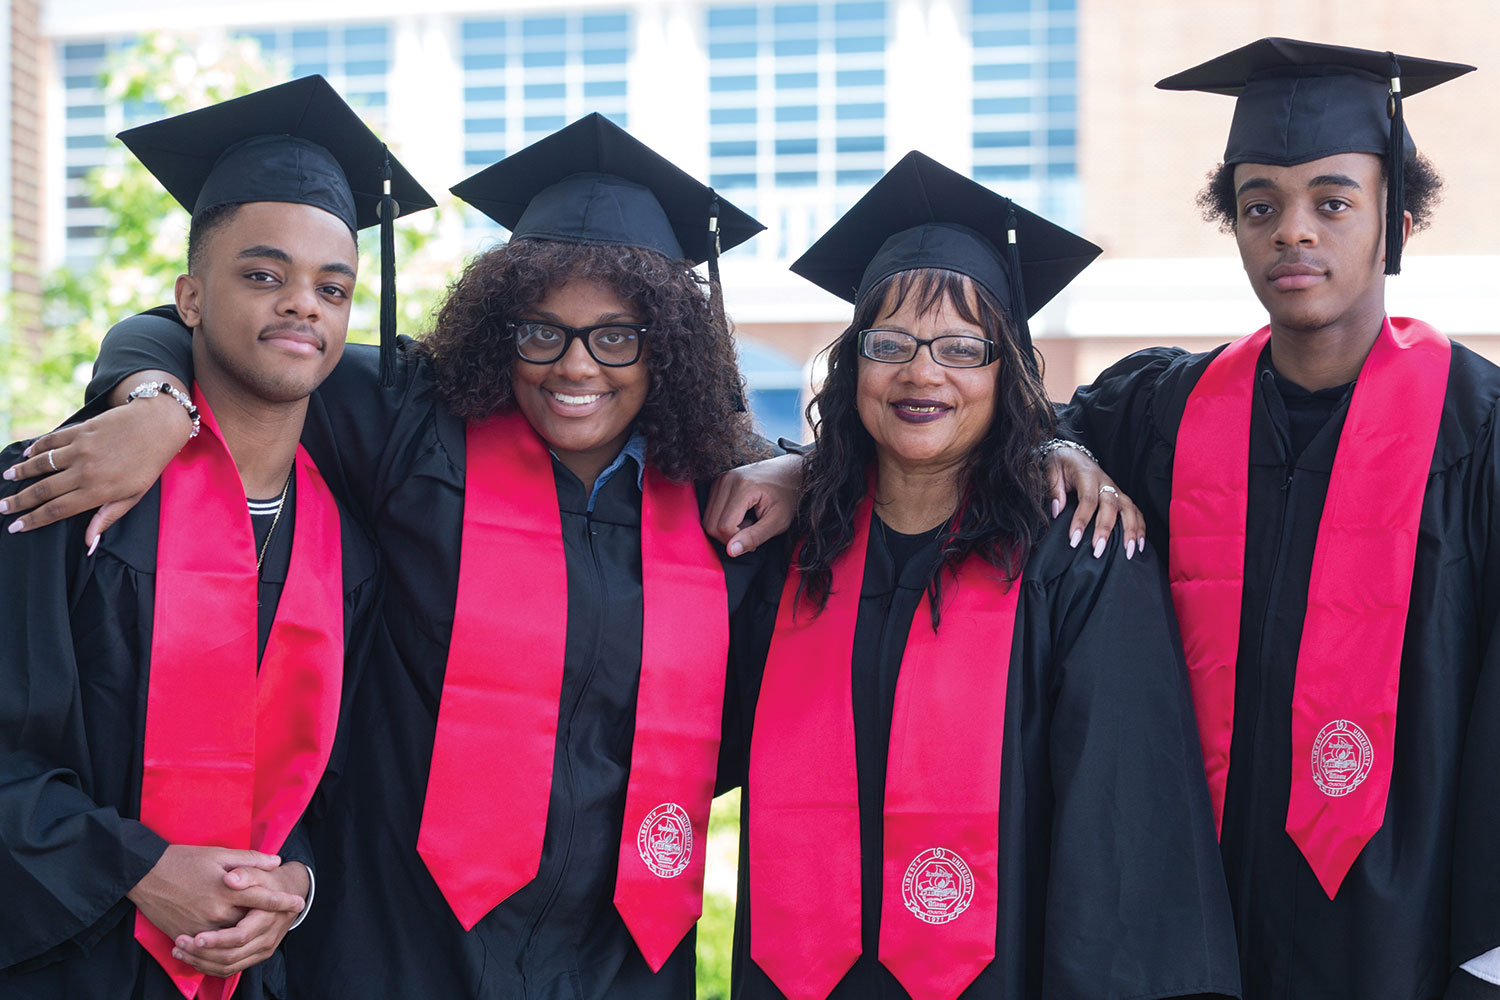 The Trezvant family completed their degrees online and traveled from Houston, Texas, to attend Commencement.